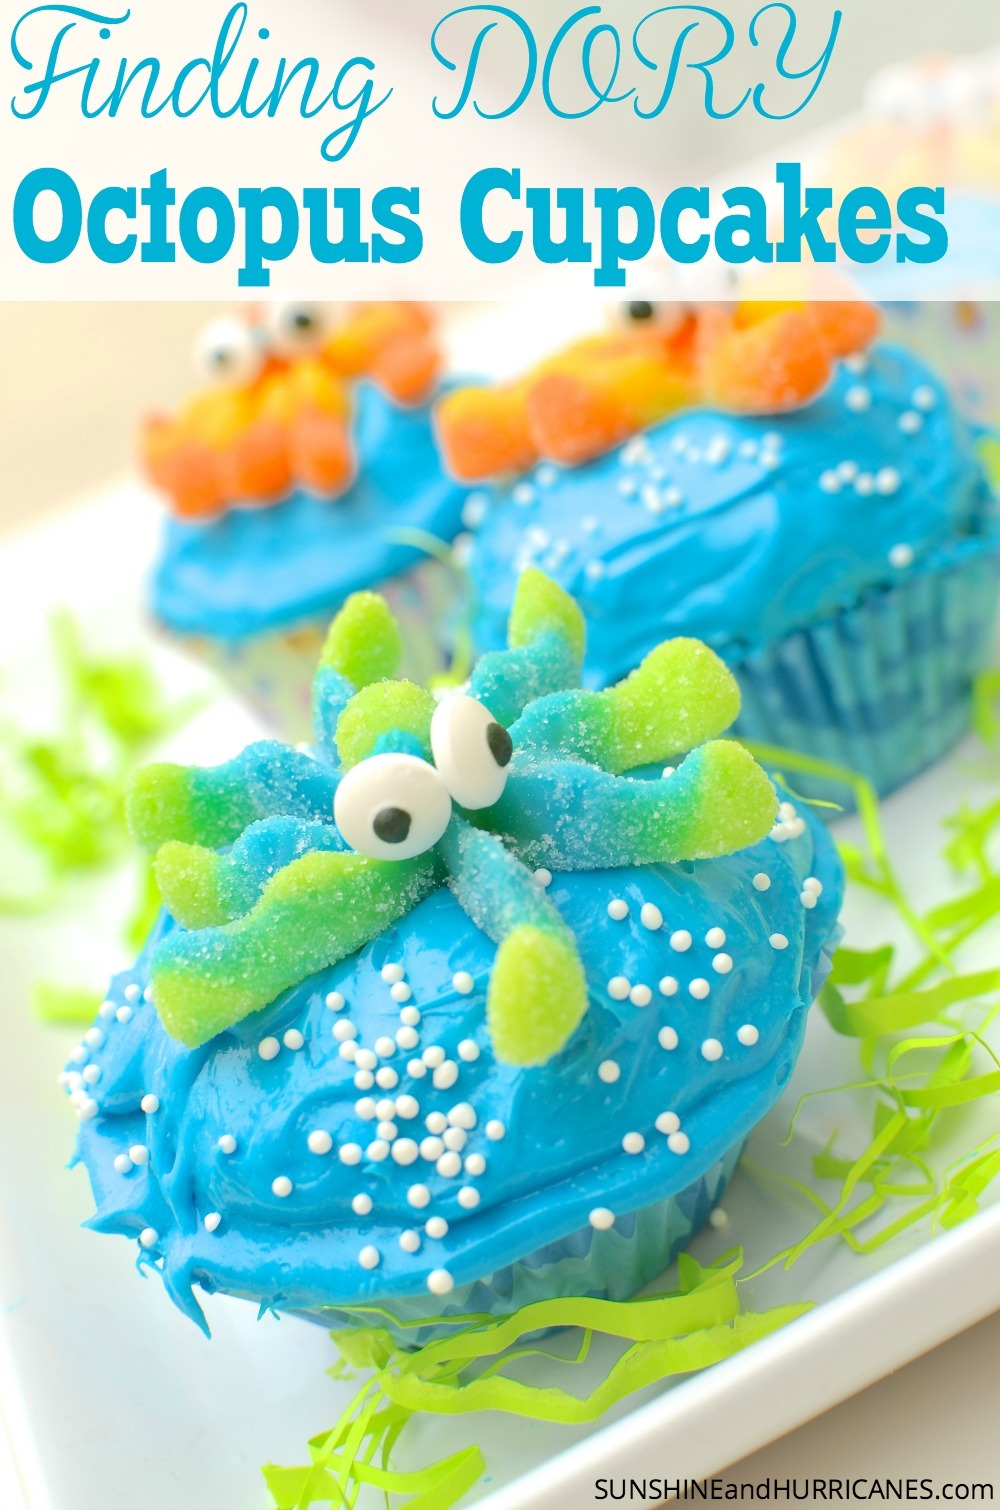 These adorable Octopus cupcakes would be perfect for a Finding Dory Birthday, A Finding Nemo Birthday or even just a fun Under the Sea Birthday. It's Ocean creatures at their cutest and tastiest. Finding Dory Cupcakes from SunshineandHurricanes.com